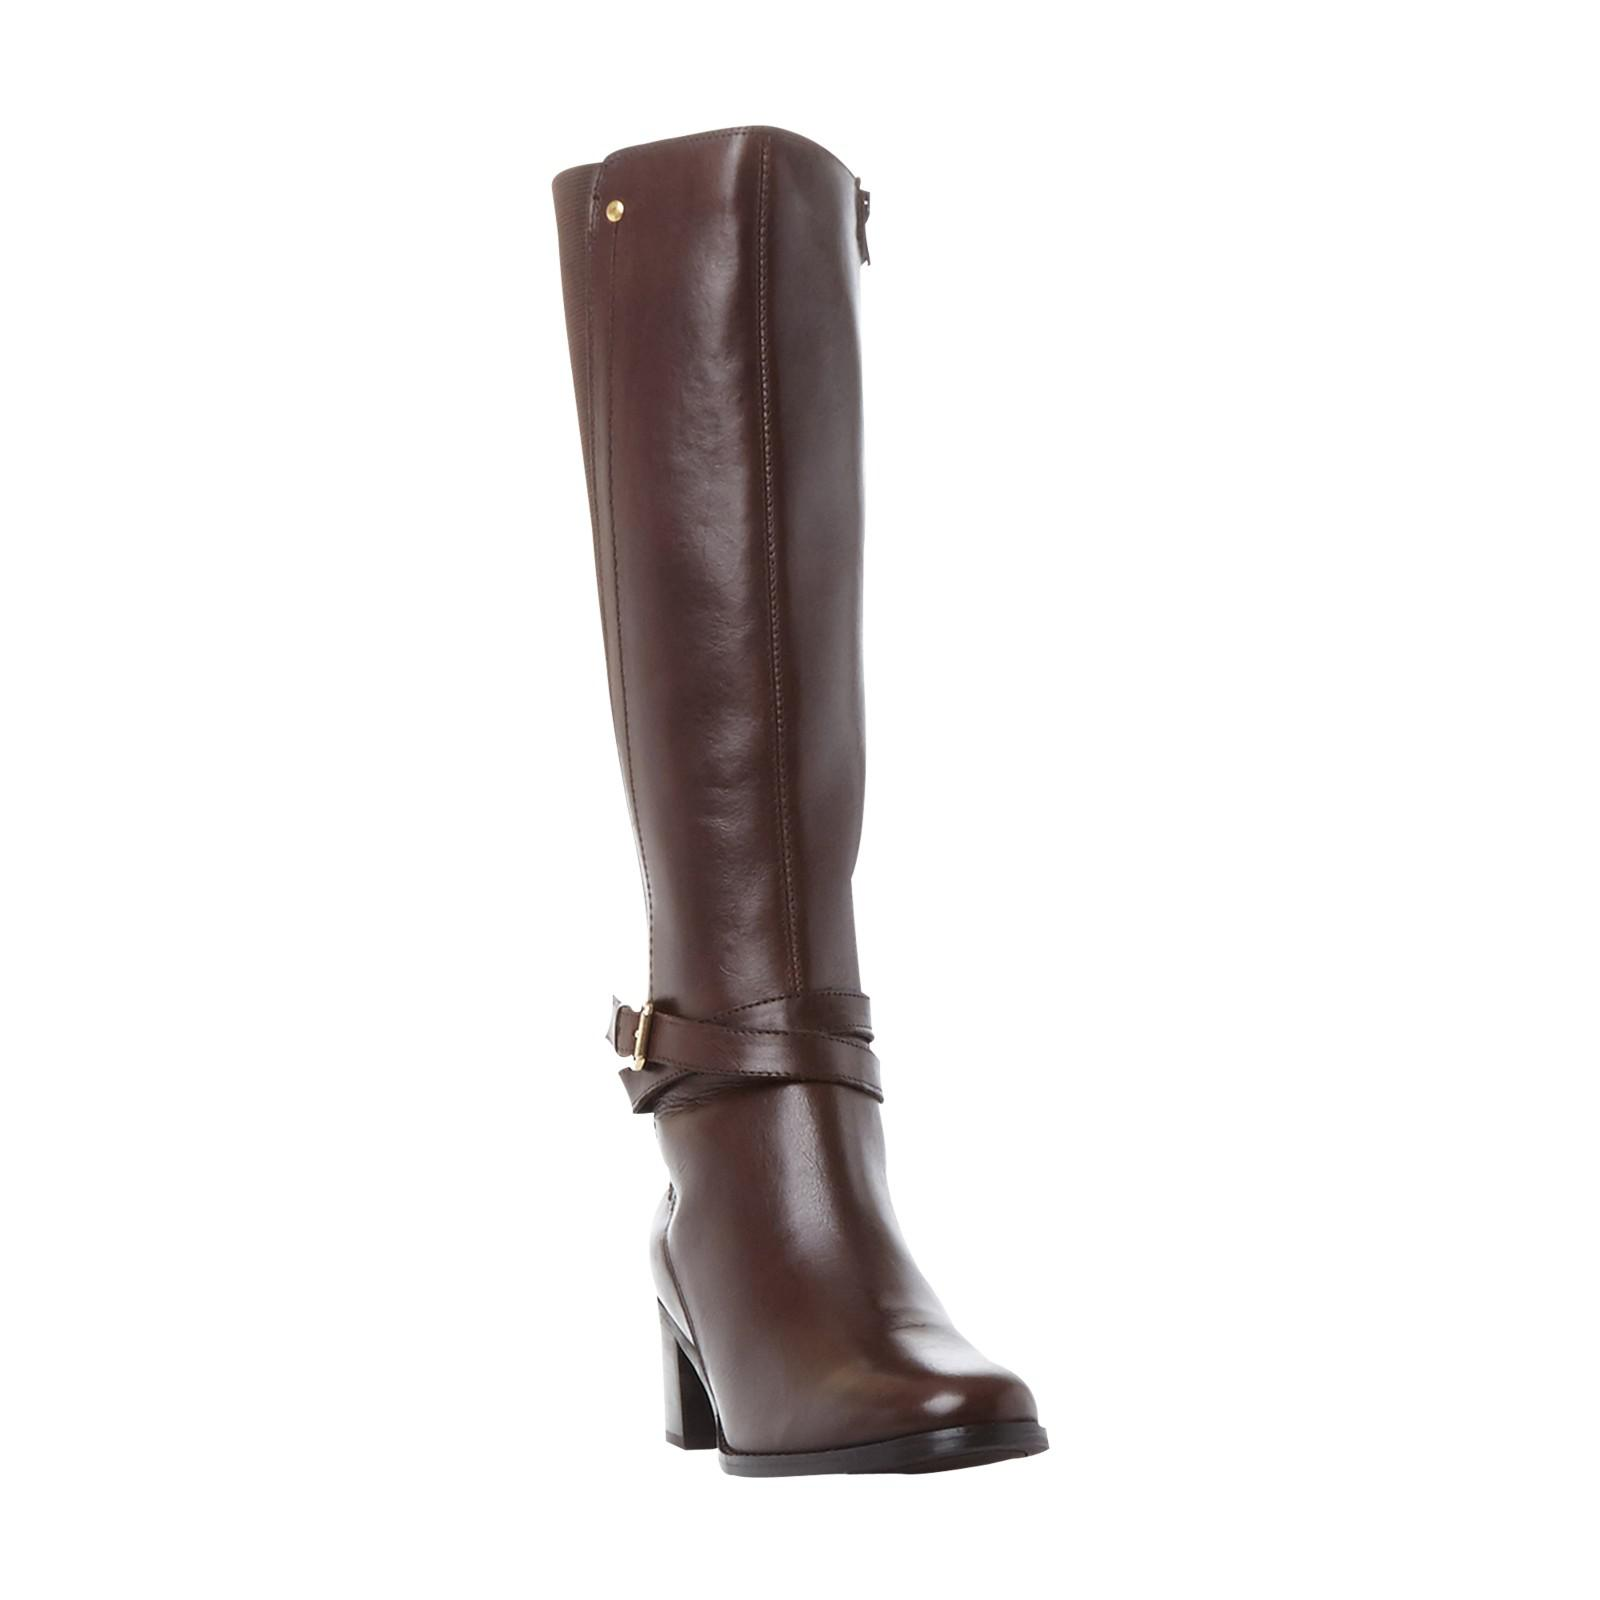 Dune Cashmere Vivv Stretch Back Knee High Boots in Brown